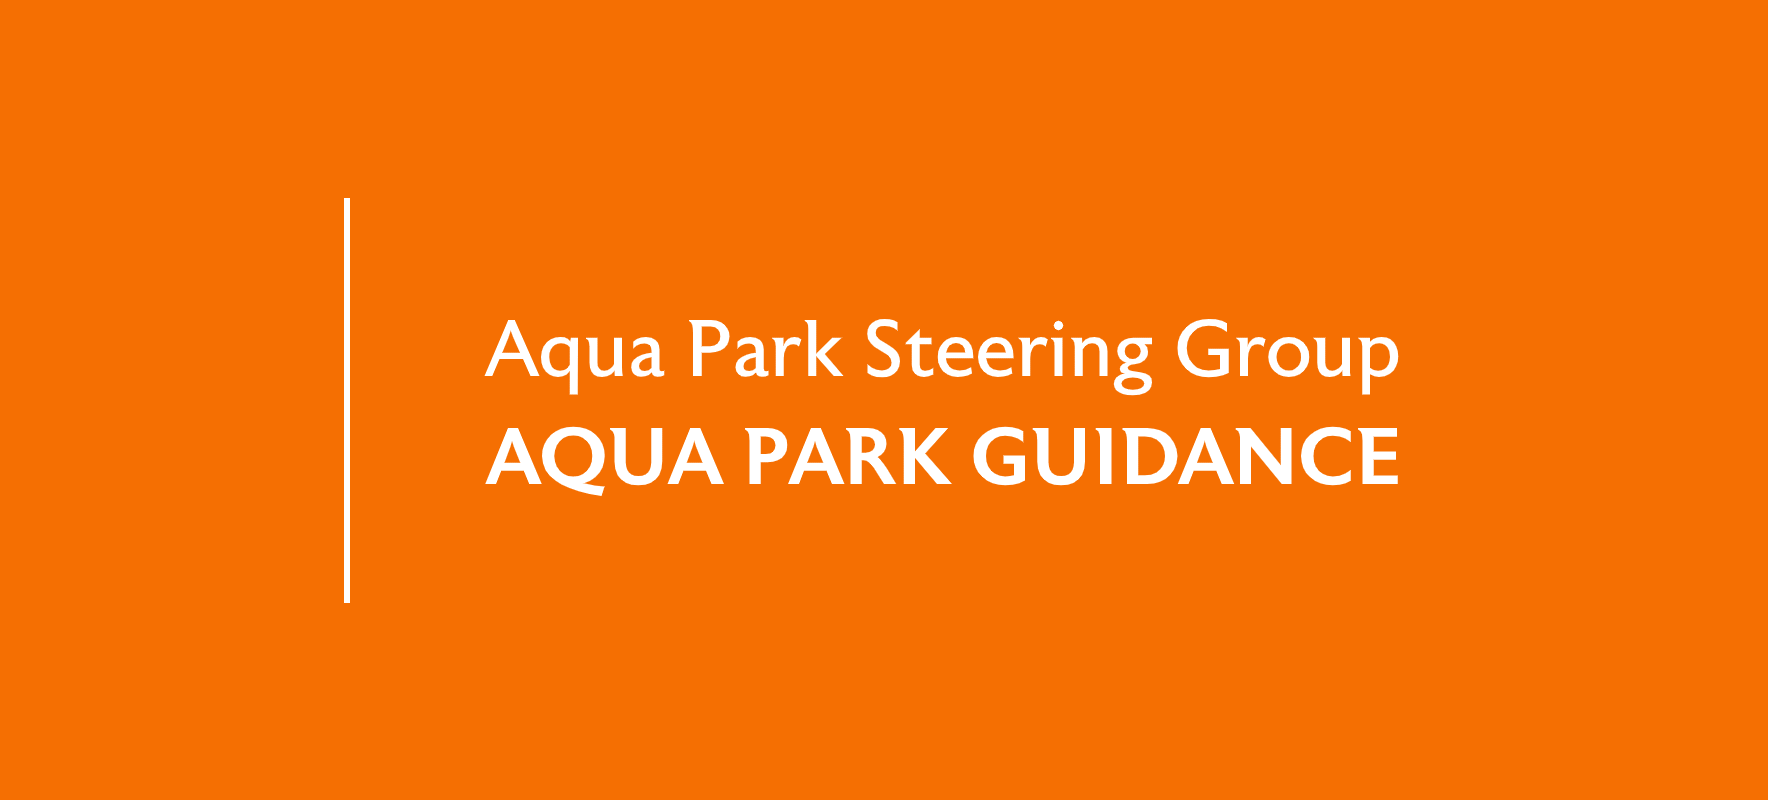 Aqua Parks Steering Group – Guidance to Aqua Park Operators During COVID-19